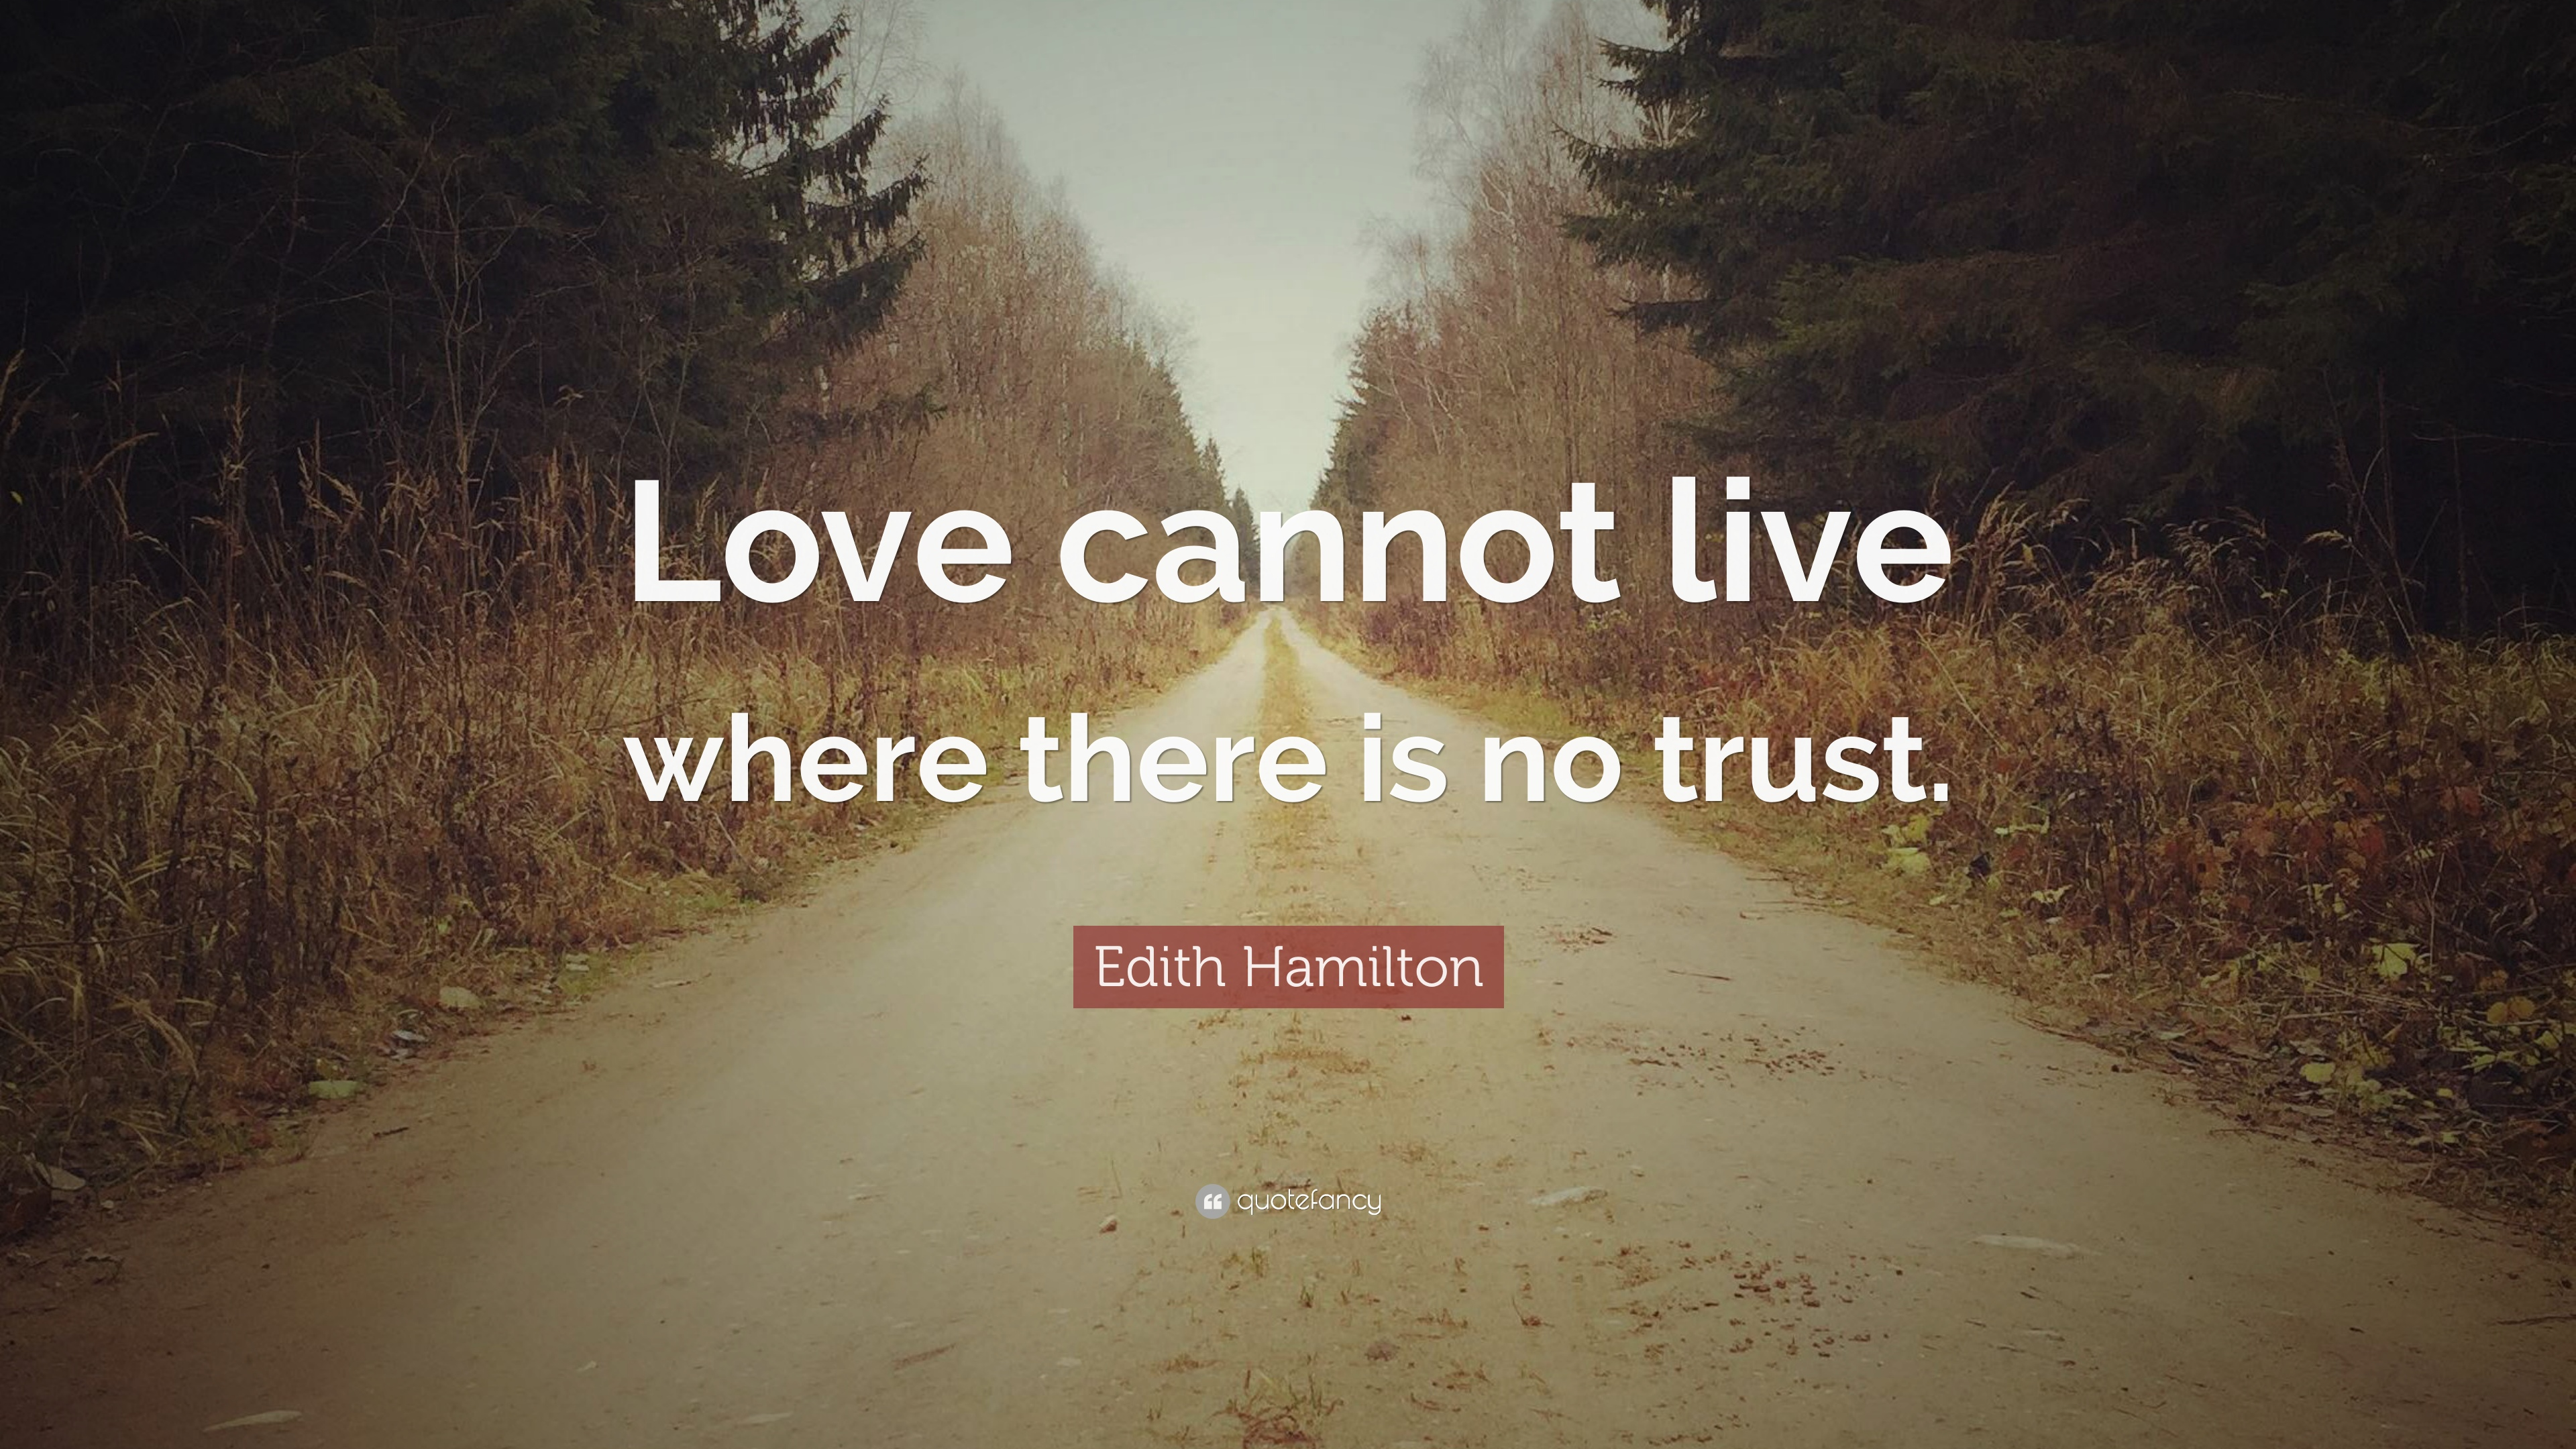 Edith Hamilton Quote: Love cannot live where there is no